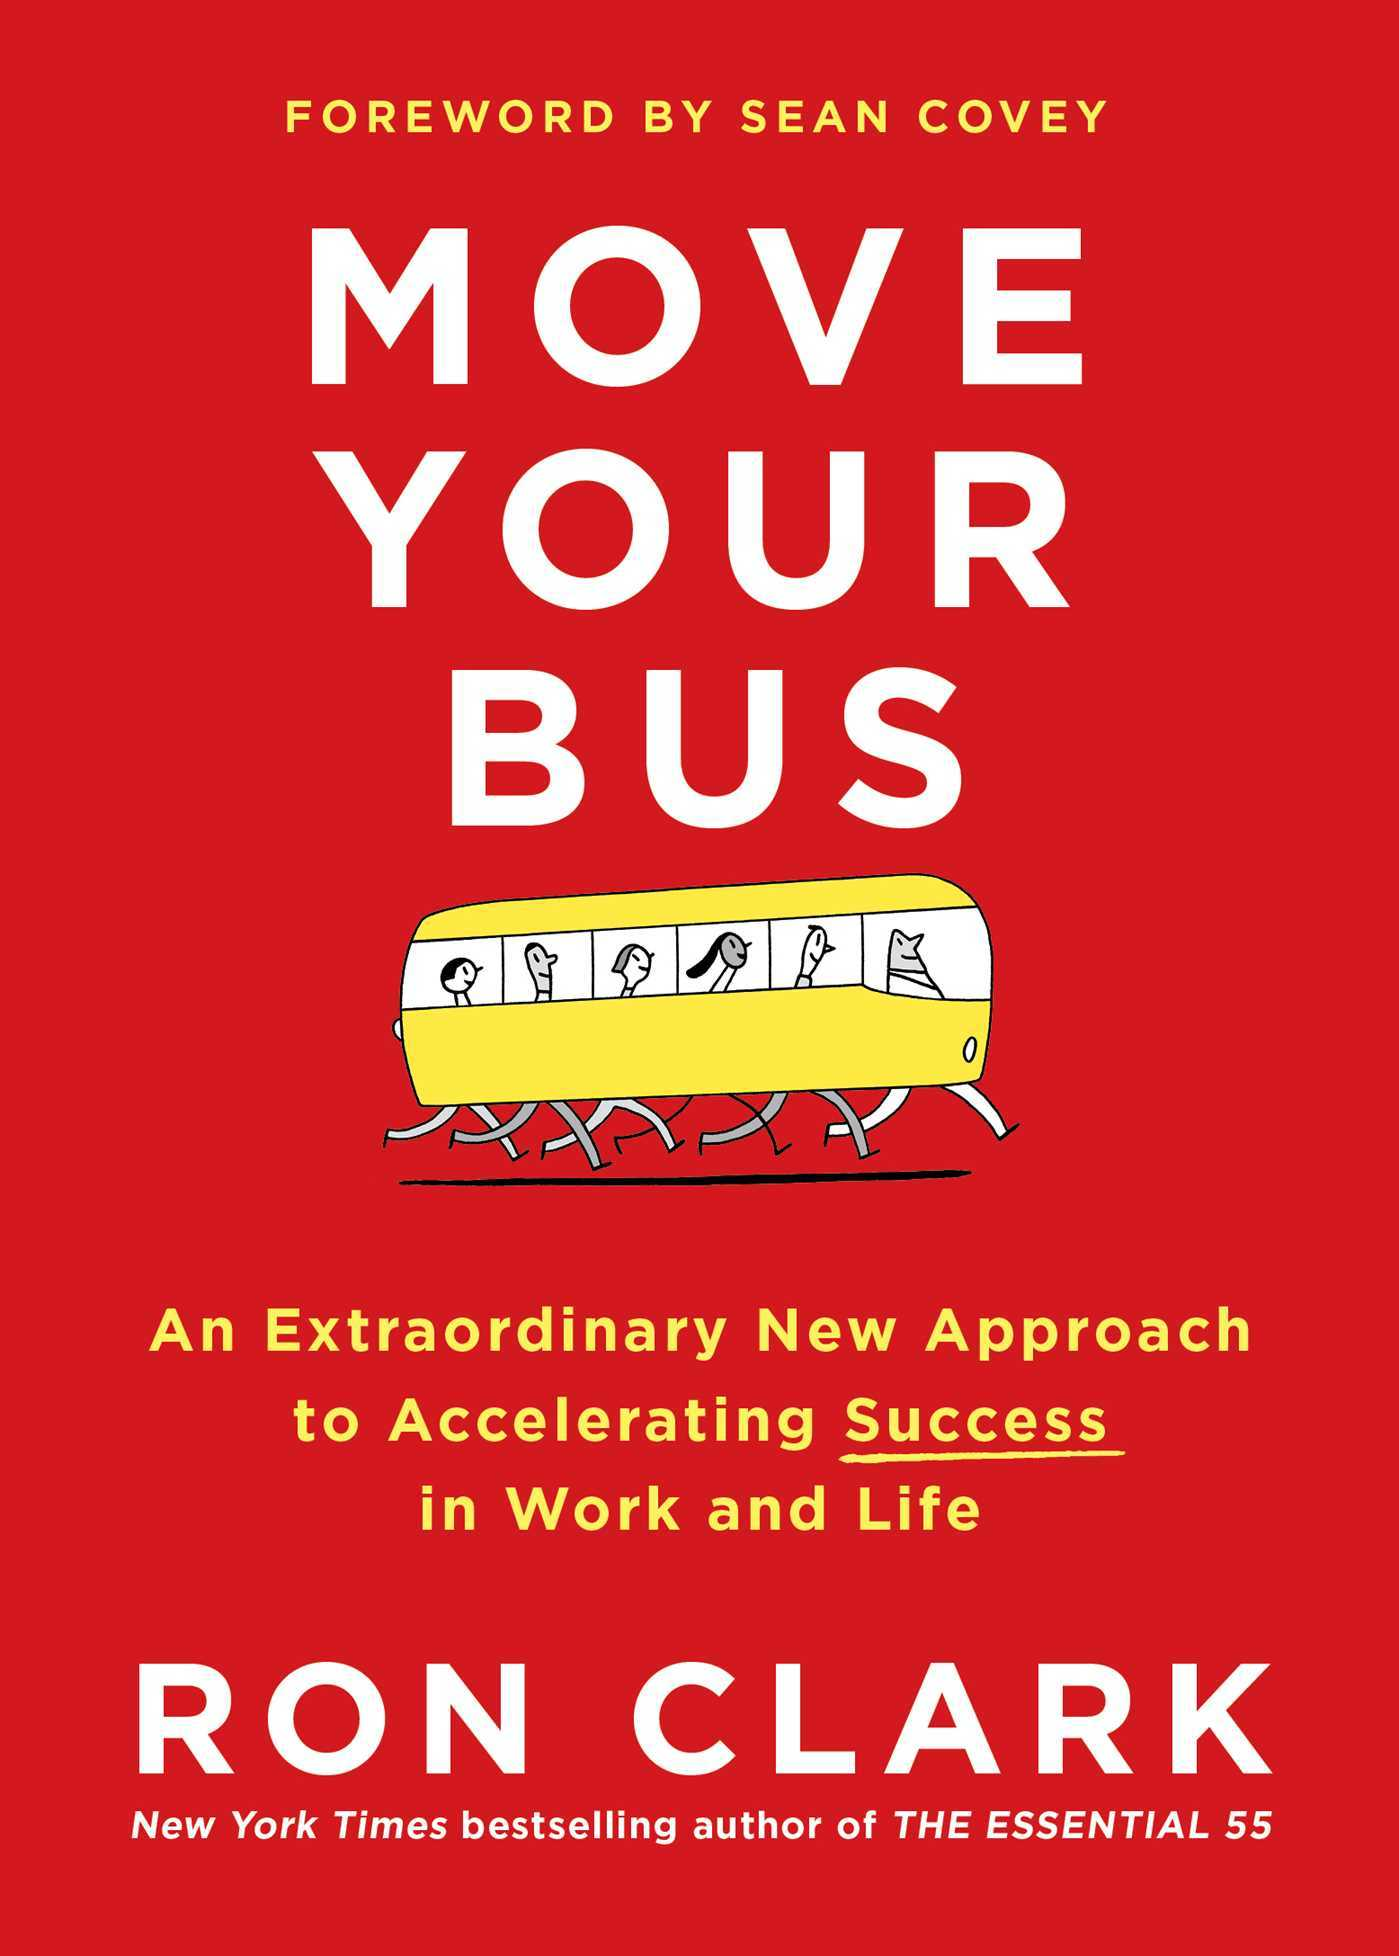 Move-Your-Bus-An-Extraordinary-New-Approach-to-Accelerating-Success-in-Work-and-Life